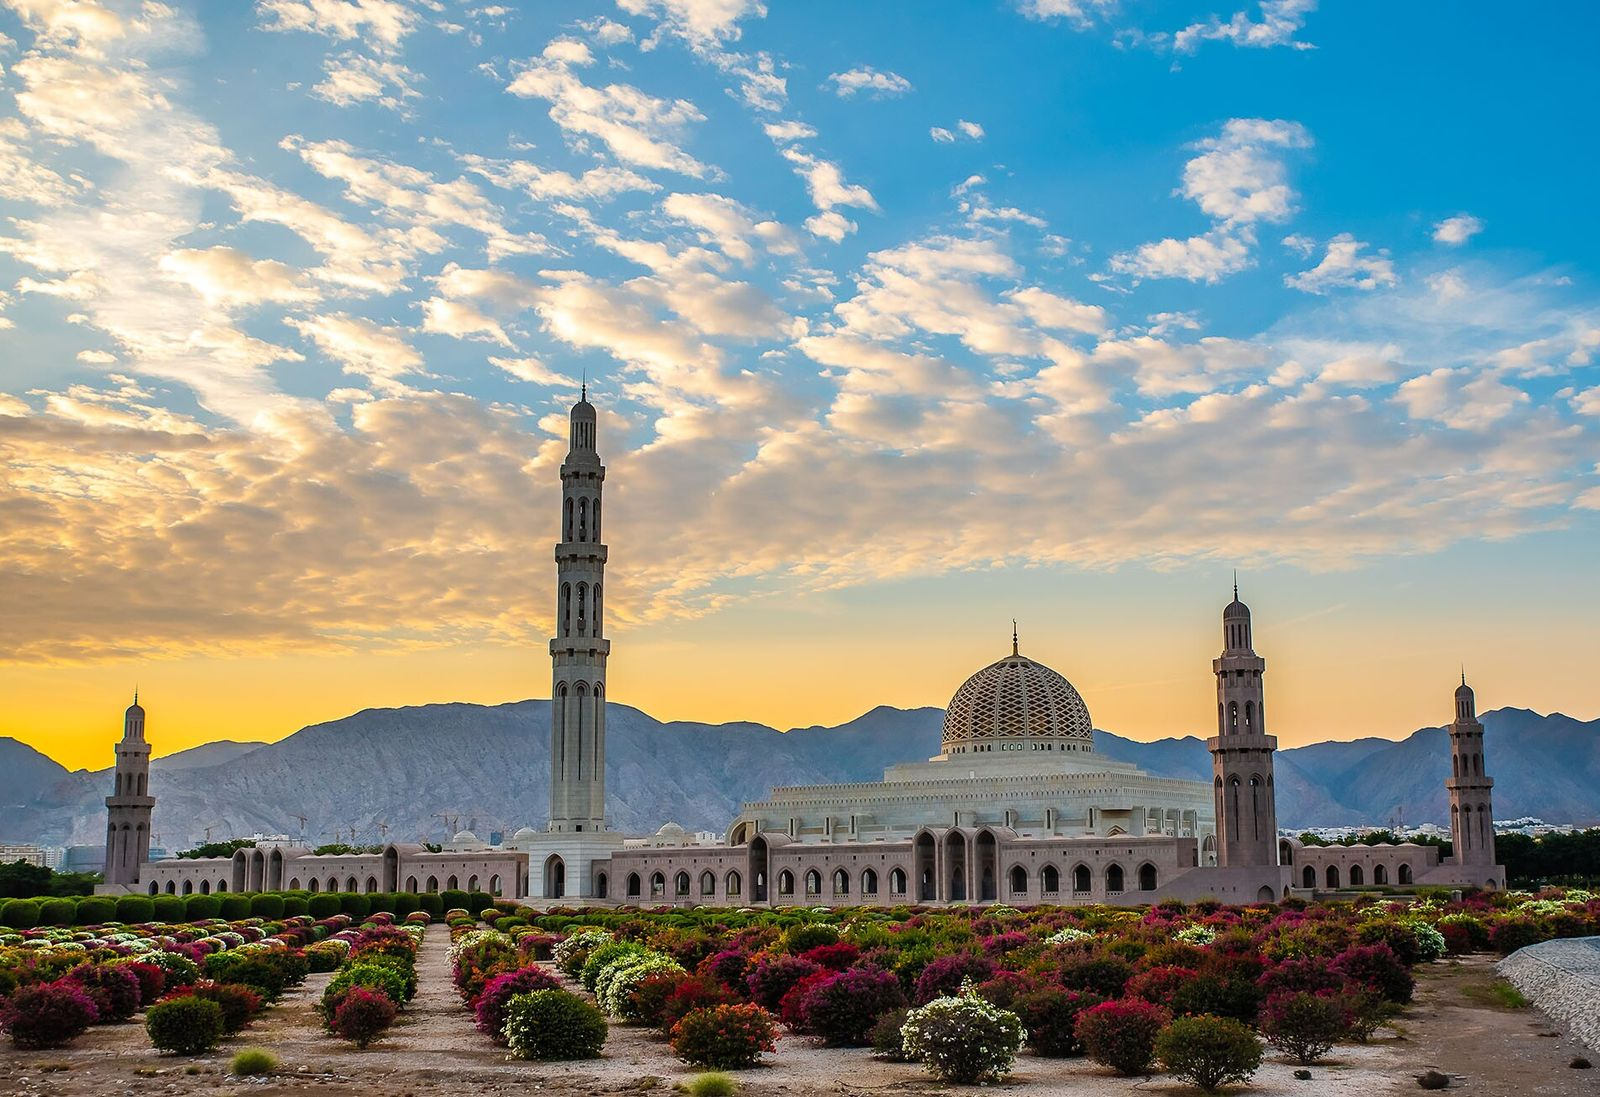 The Grand Mosque in Muscat can accommodate 20,000 worshippers and boasts the biggest chandelier in the world.